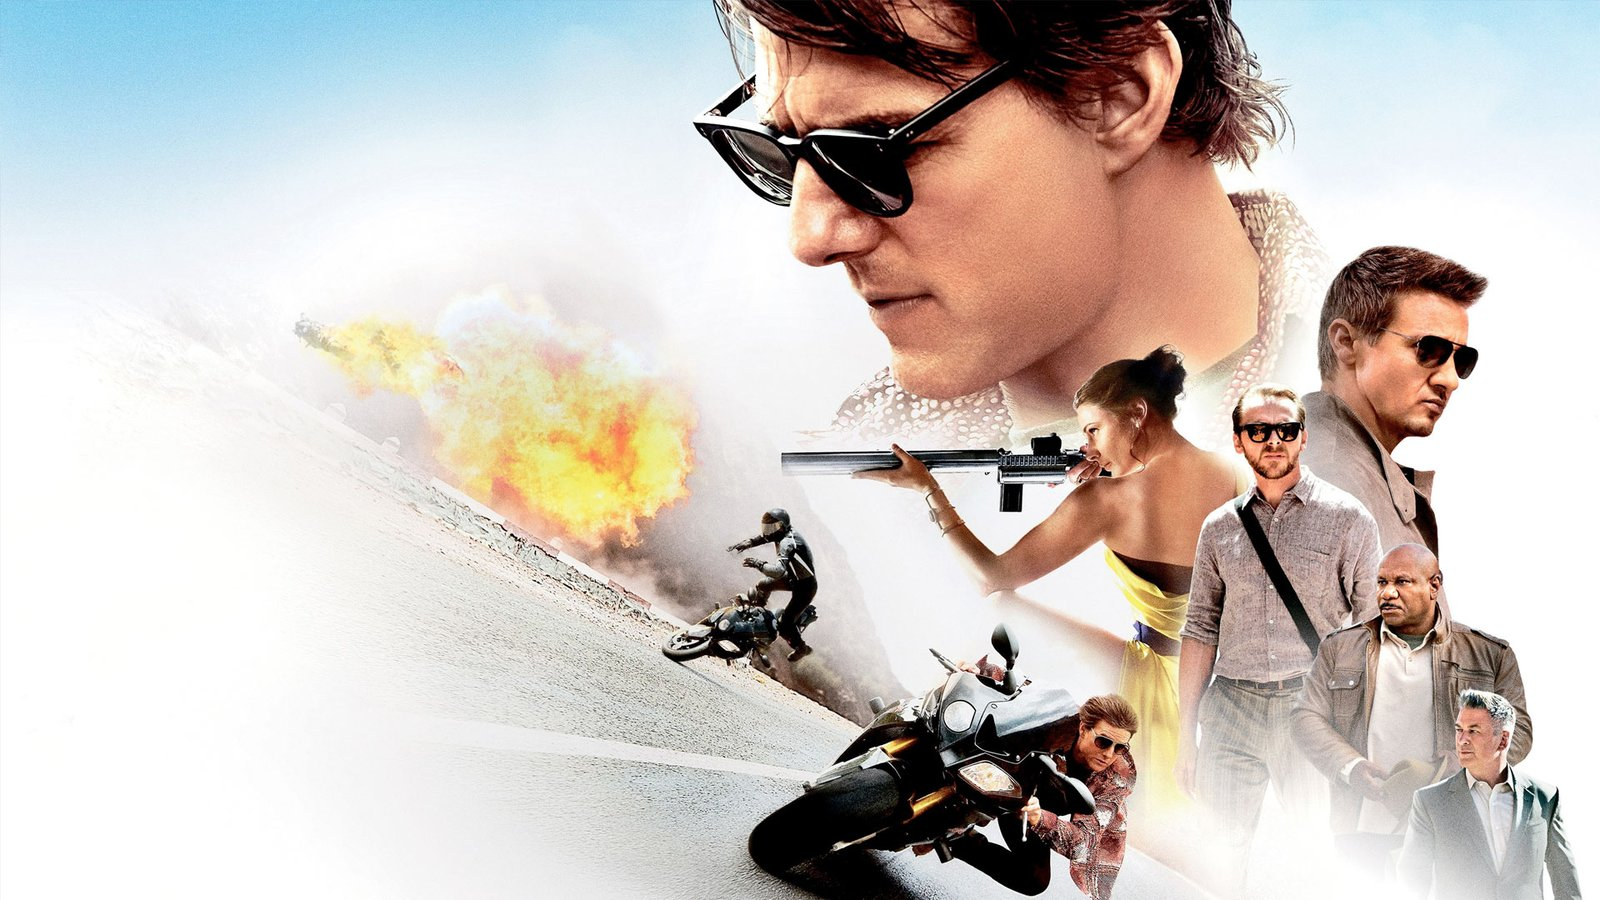 / Mission: Impossible - Rogue Nation